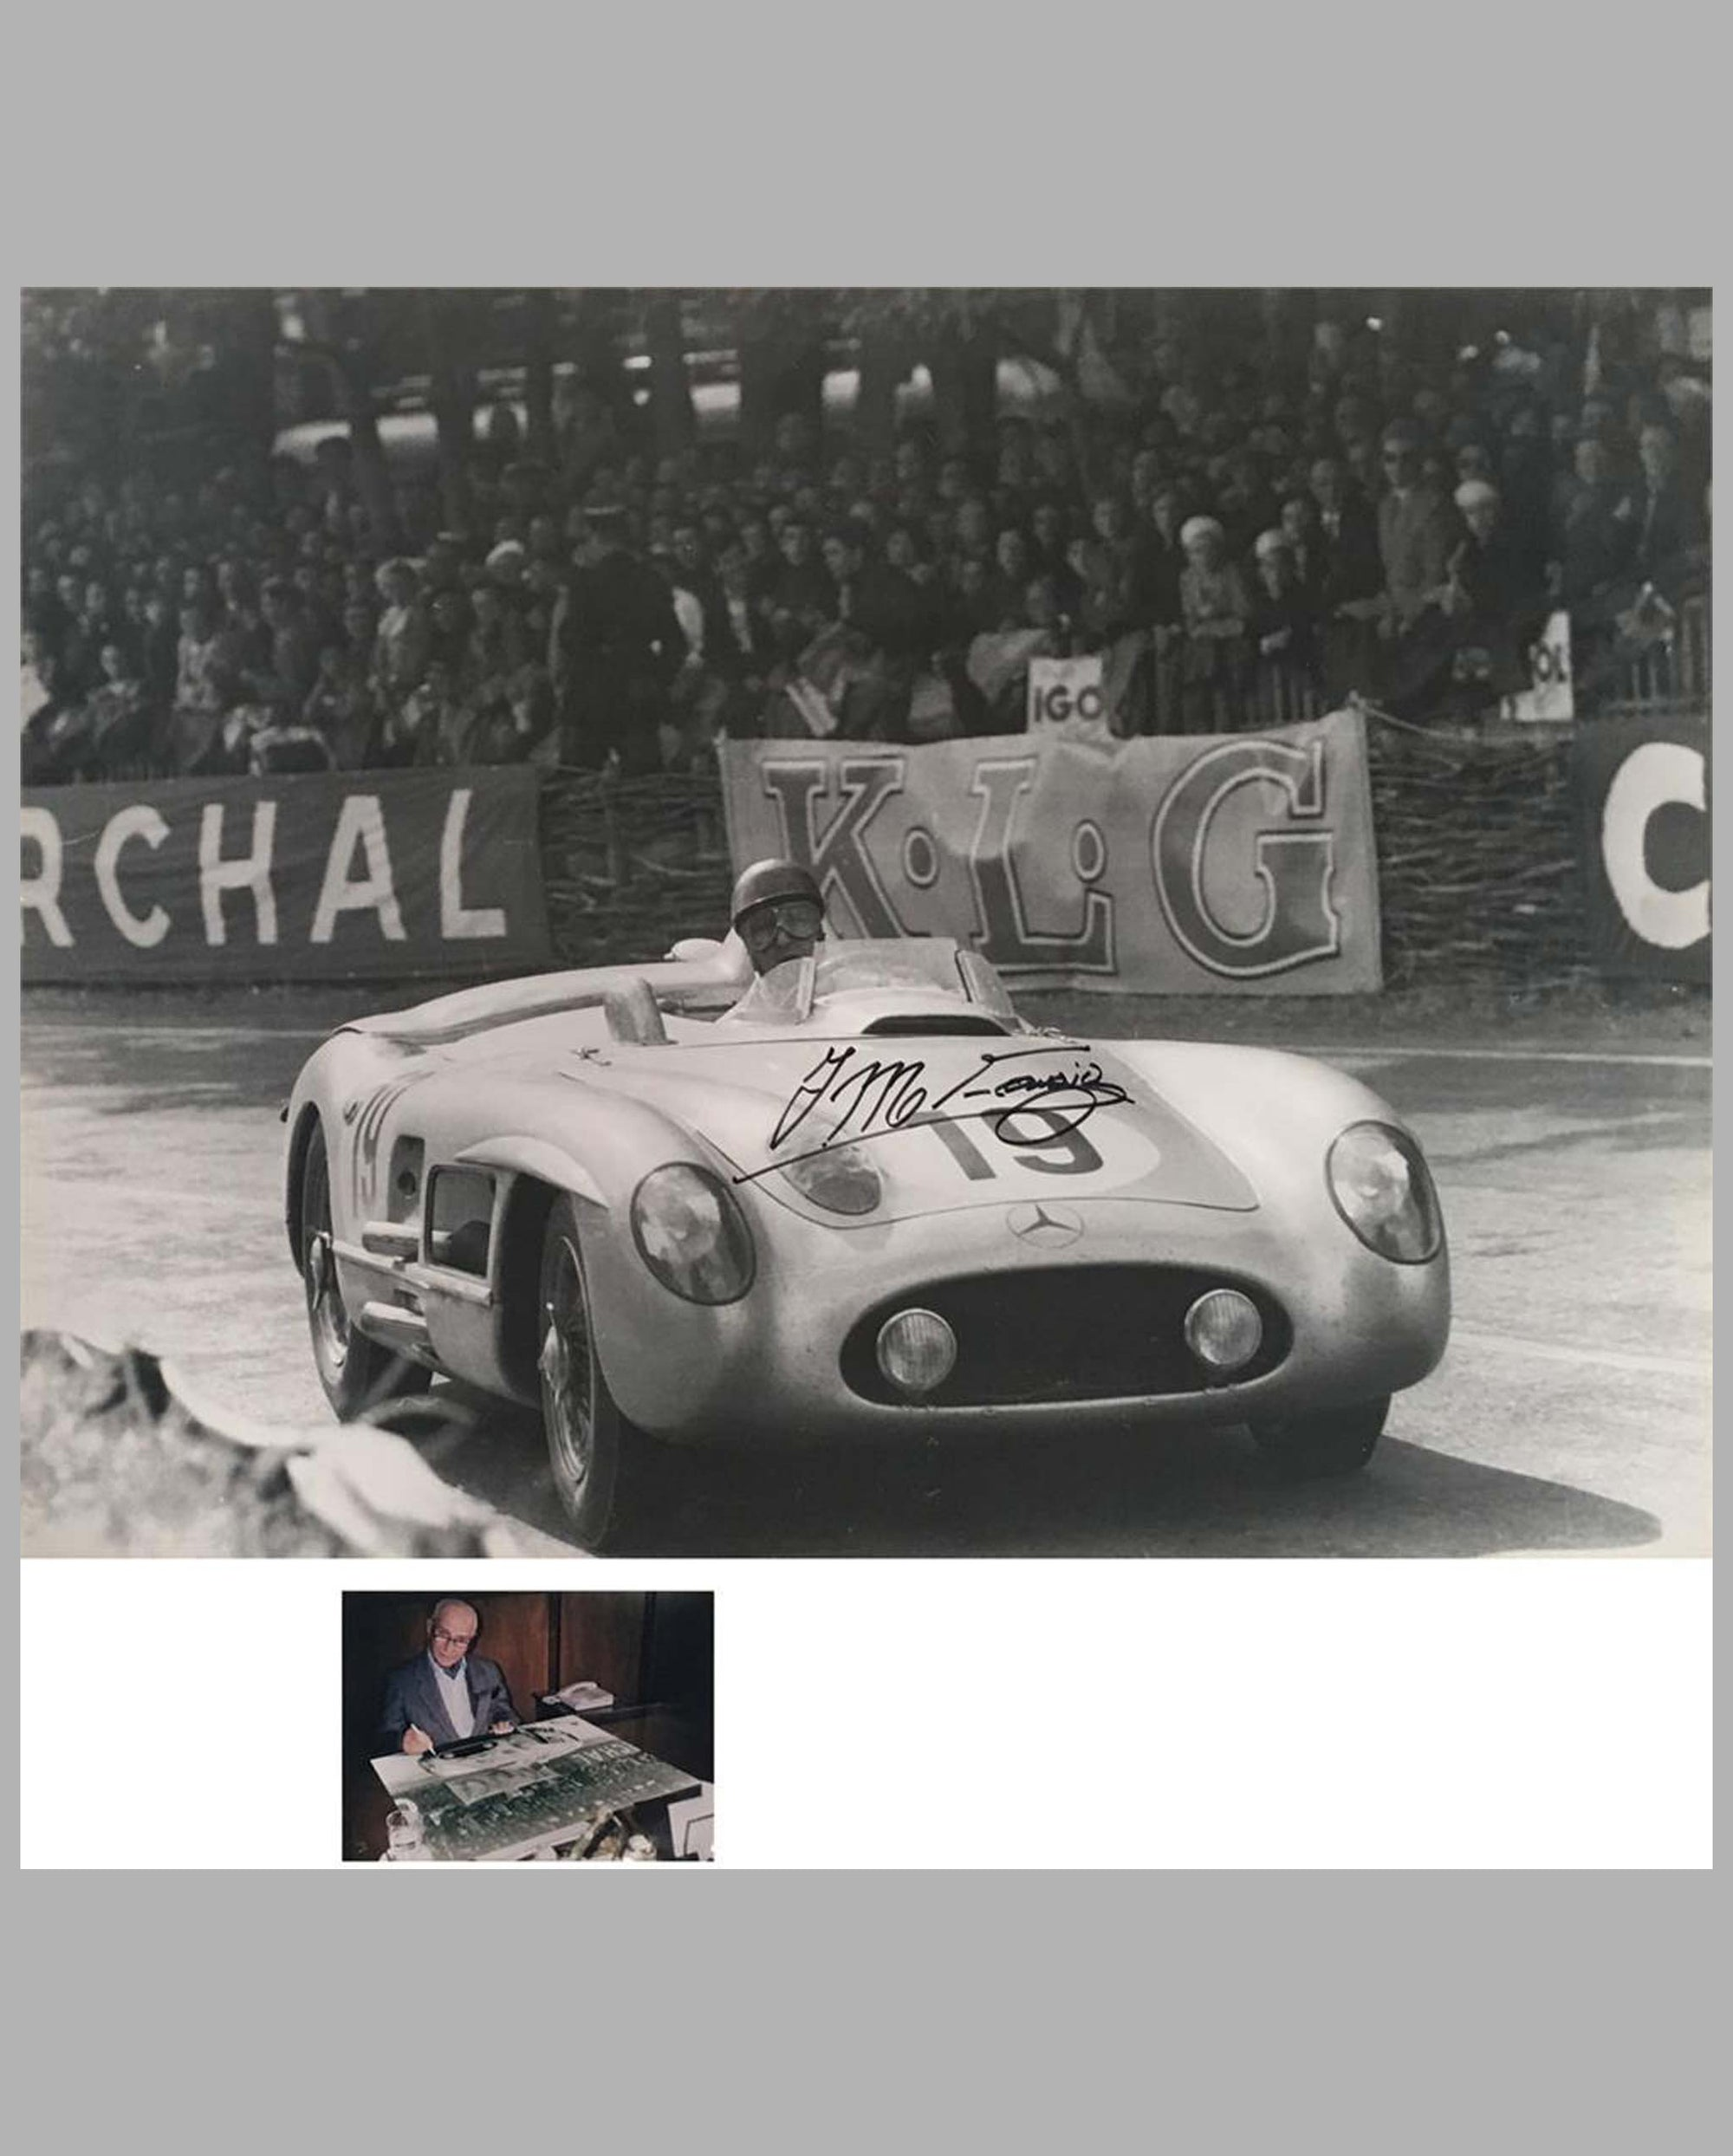 1955 - 24 Hours of Le Mans photograph of Juan Manuel Fangio's Mercedes 300 SLR, autographed by driver